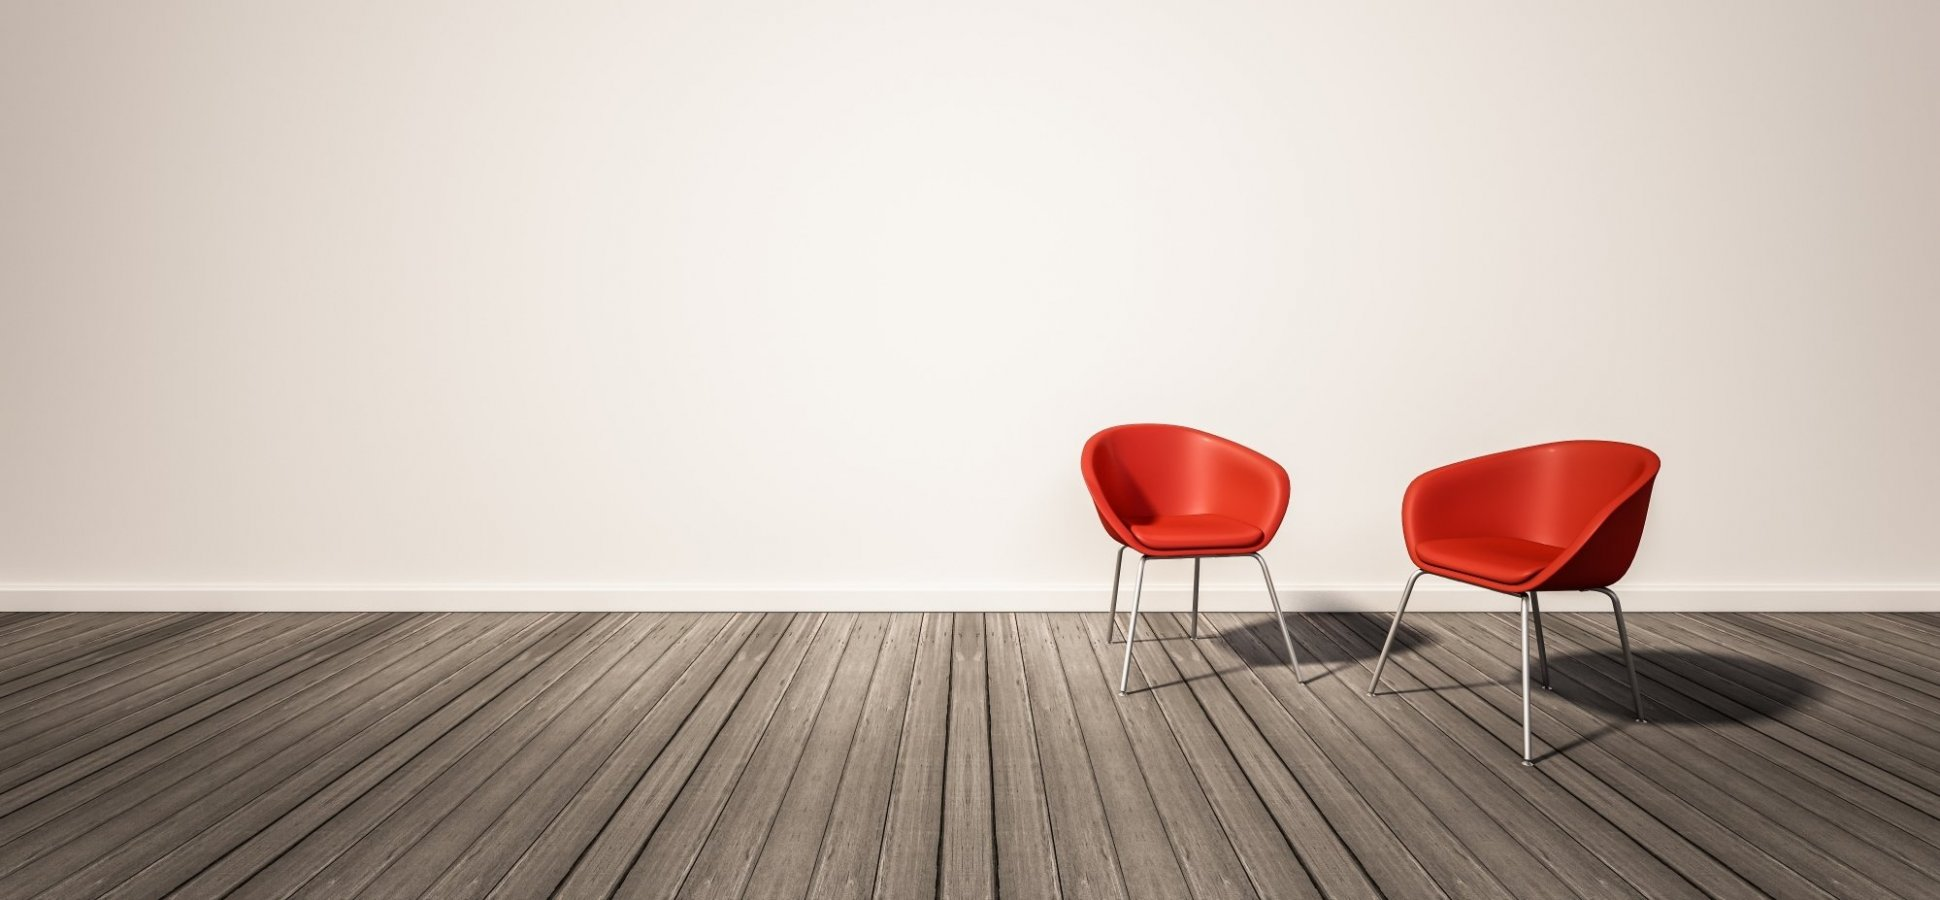 fa4bf587c481 3 Things I Look for in a Mentee Before I Agree to Take Them On | Inc.com